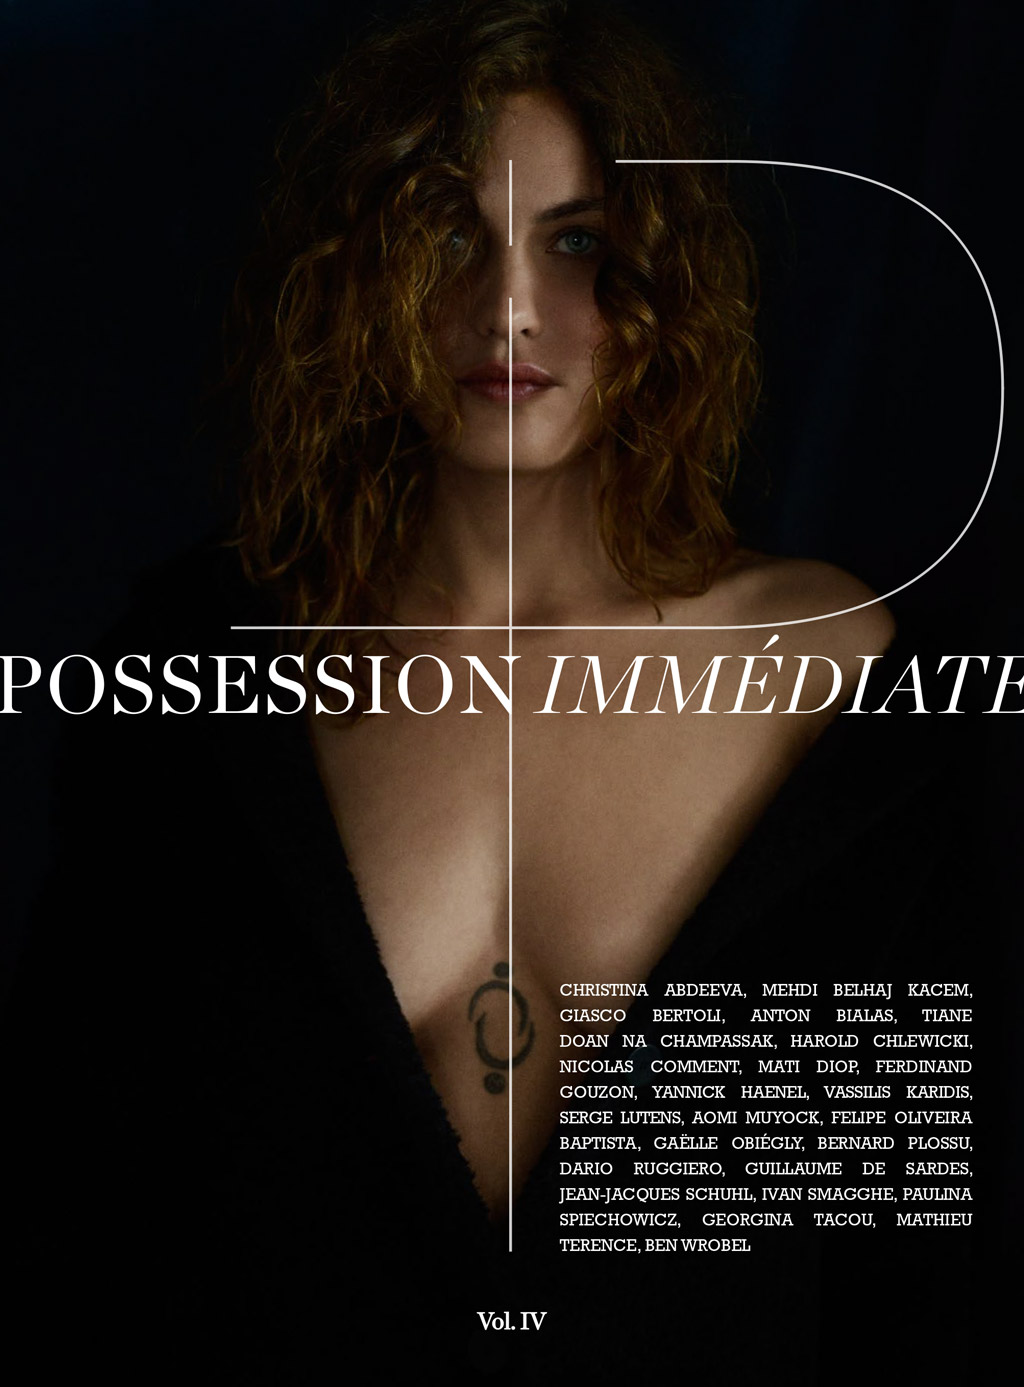 Possession Immédiate Volume 4, couverture , Aomi Muyock photographiée par Giasco Bertoli